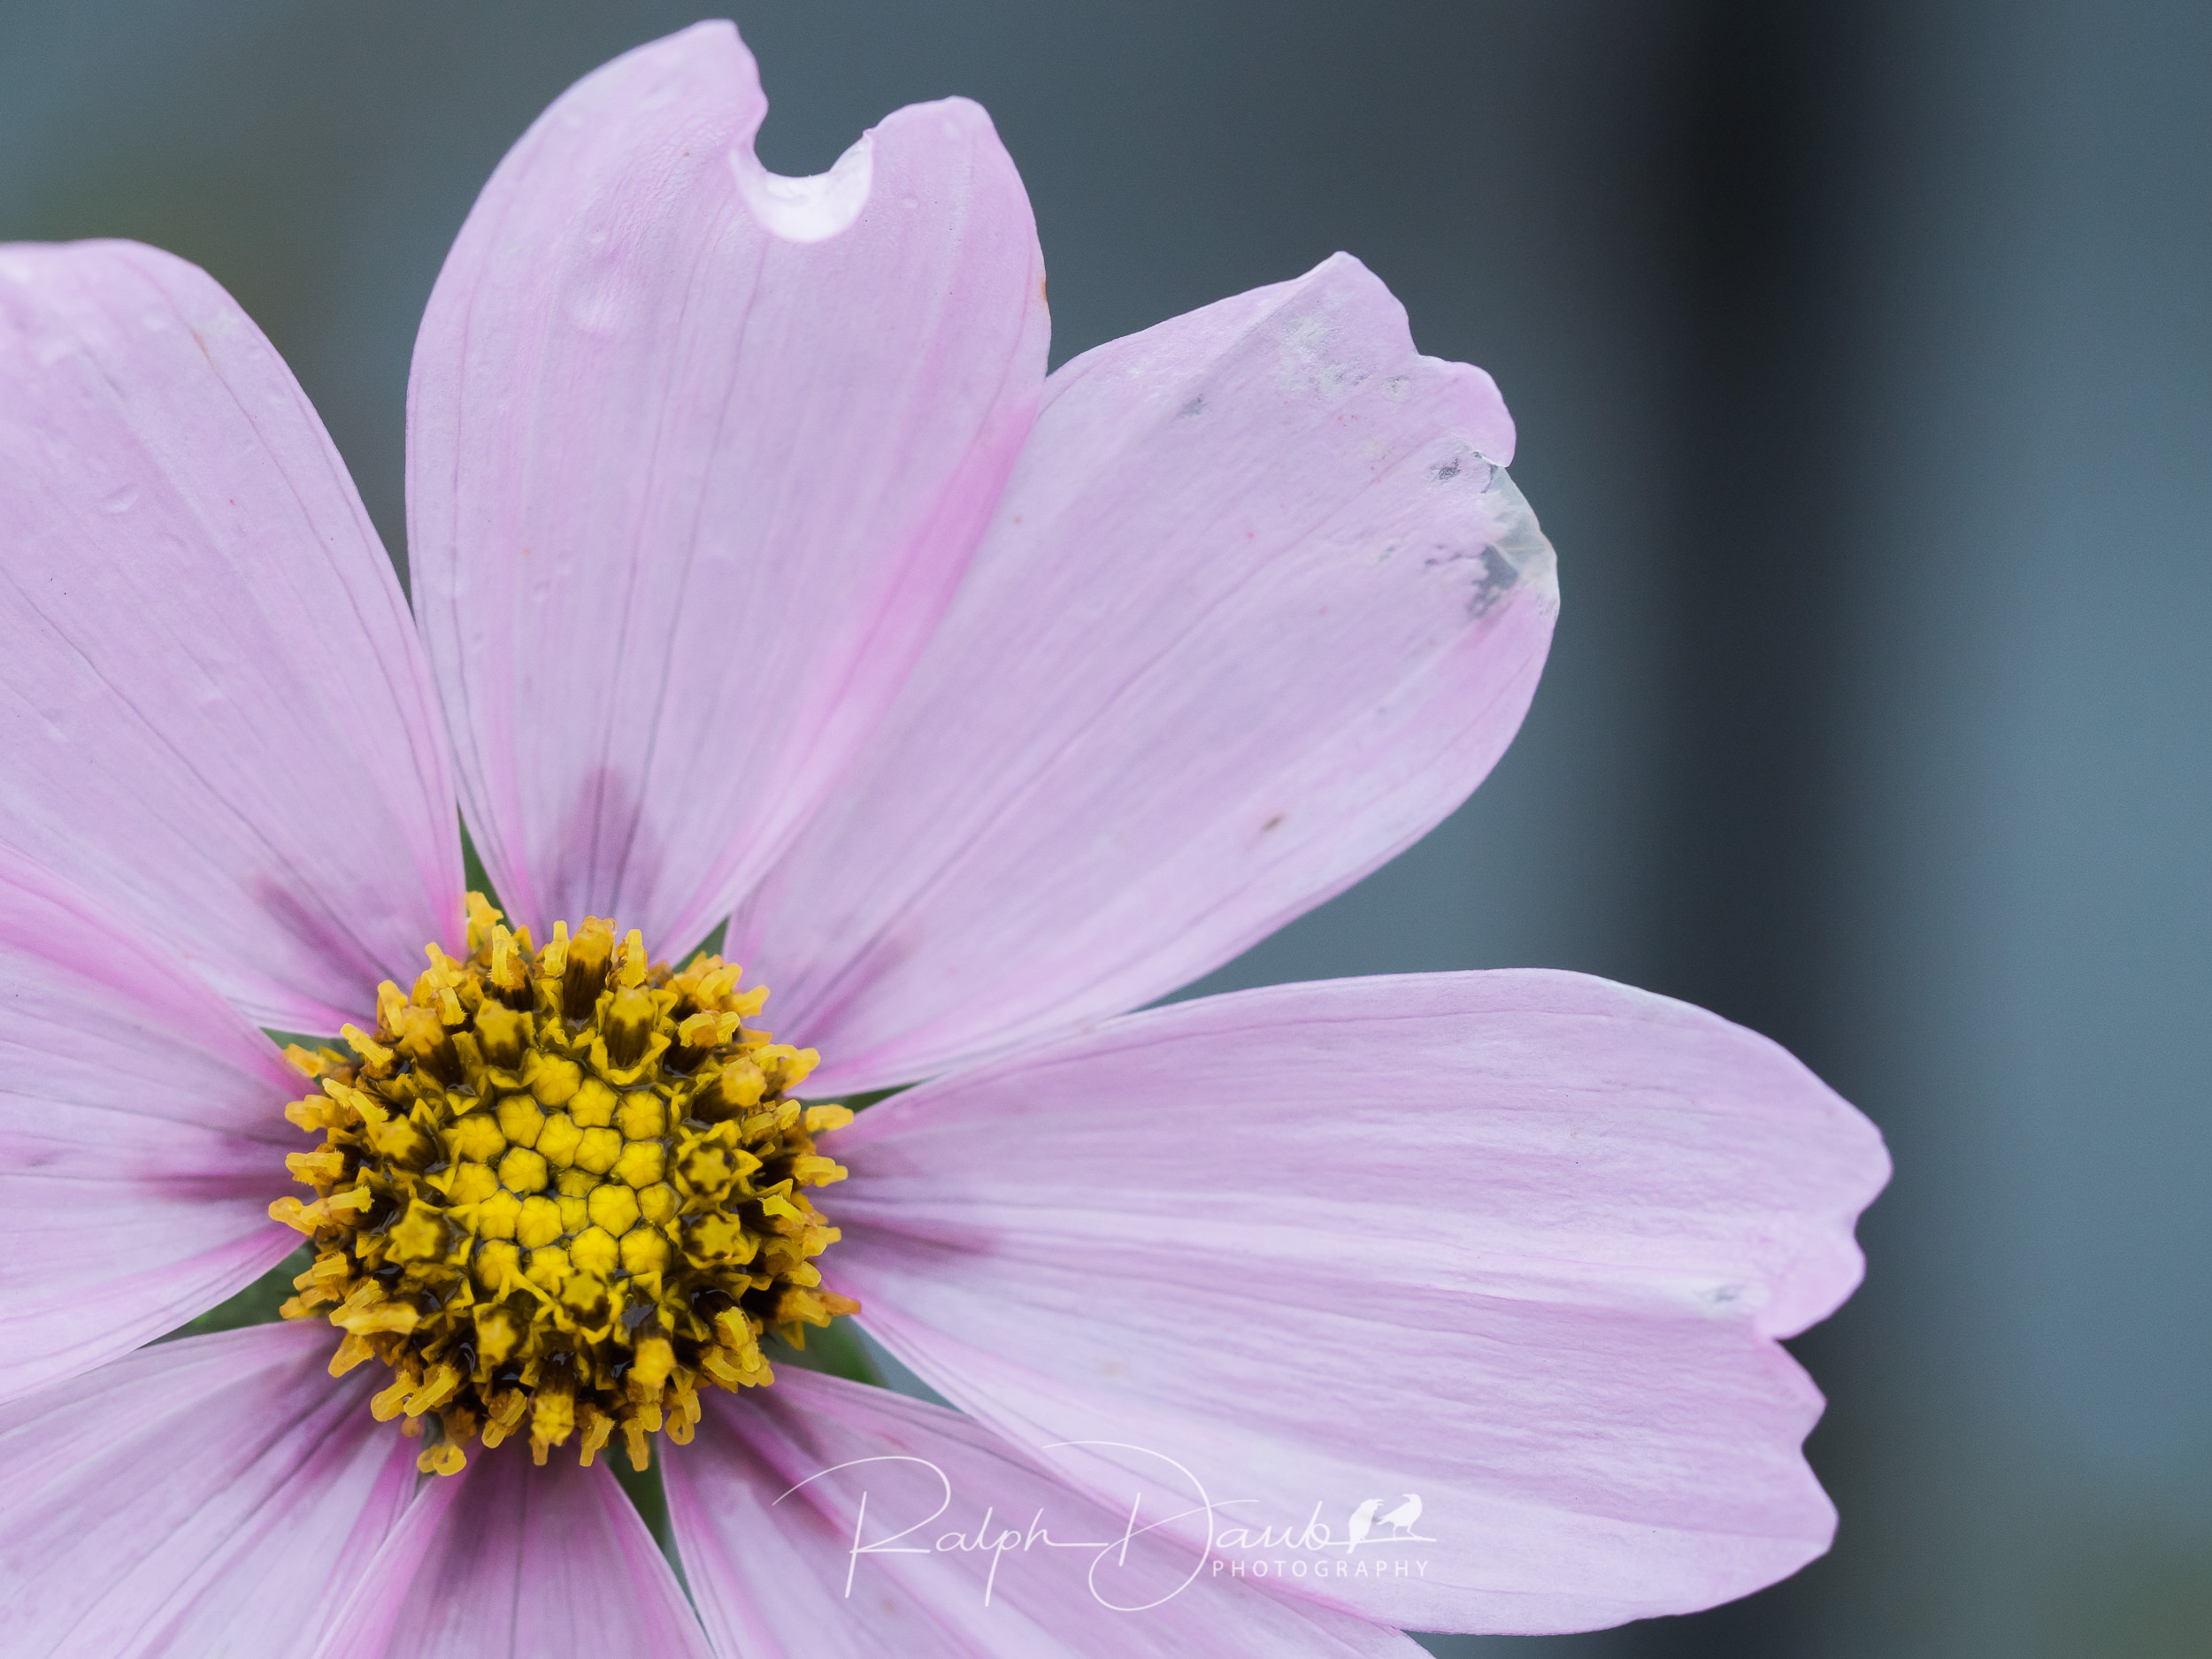 2017-12-02 - Raindrops, Heart Cofee with Cassie, Flowers - 15h35m.jpg